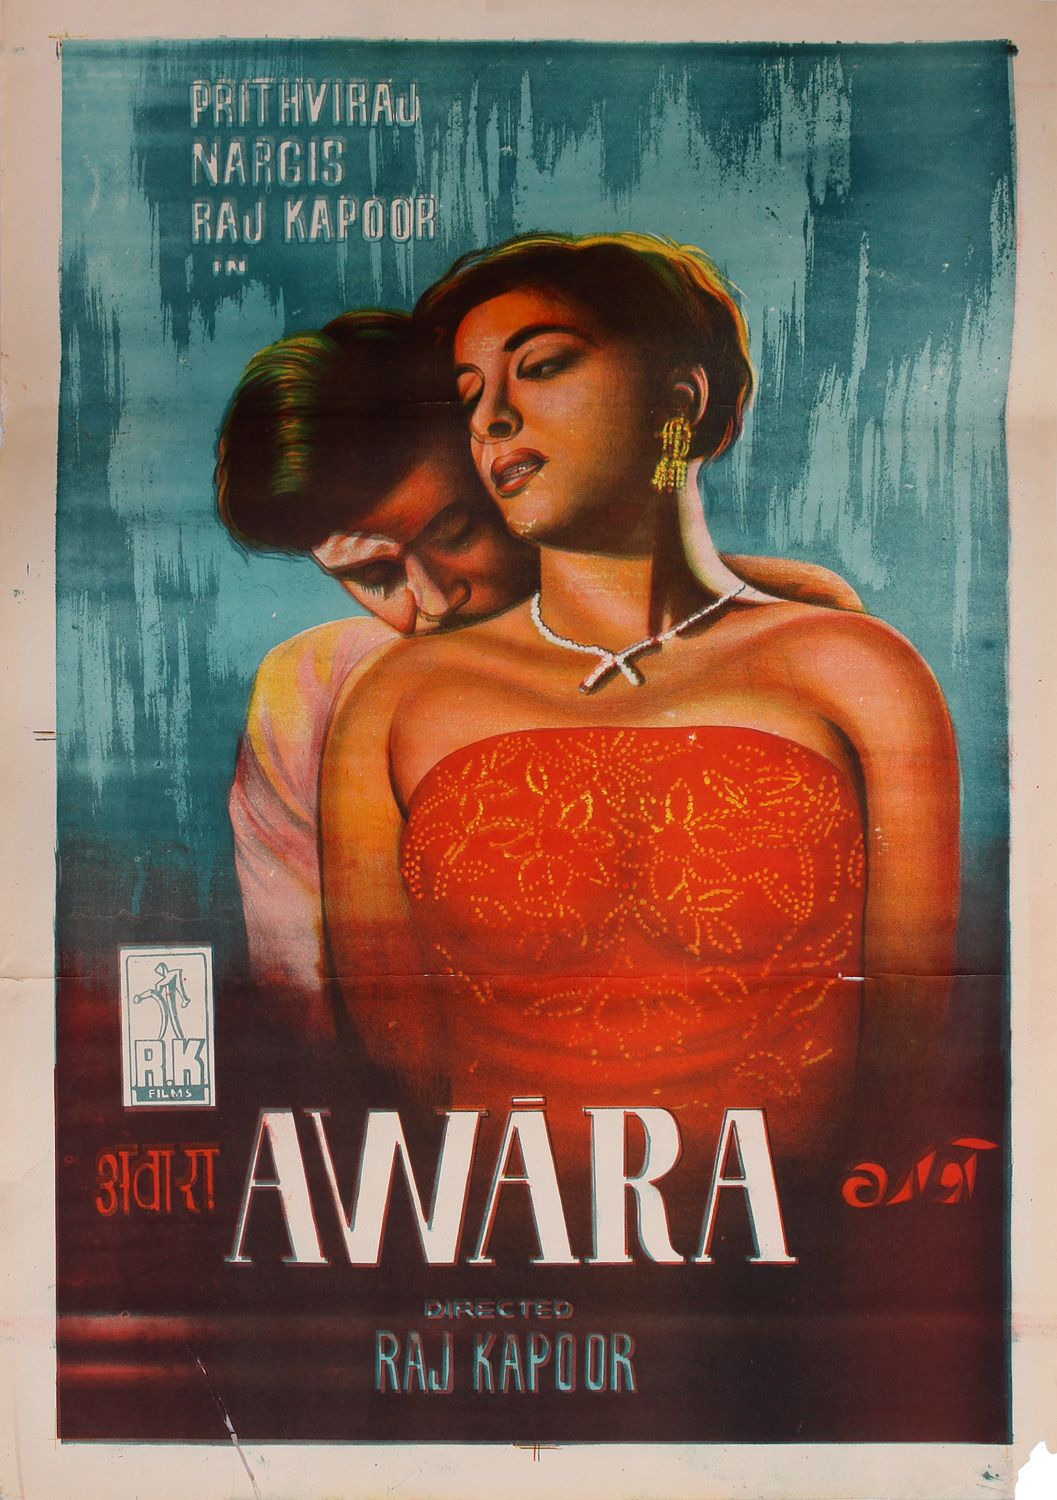 Rajkapoor Awara Original Poster No Reserve Auction June 25 26 Old Movie Posters Bollywood Posters Film Posters Vintage